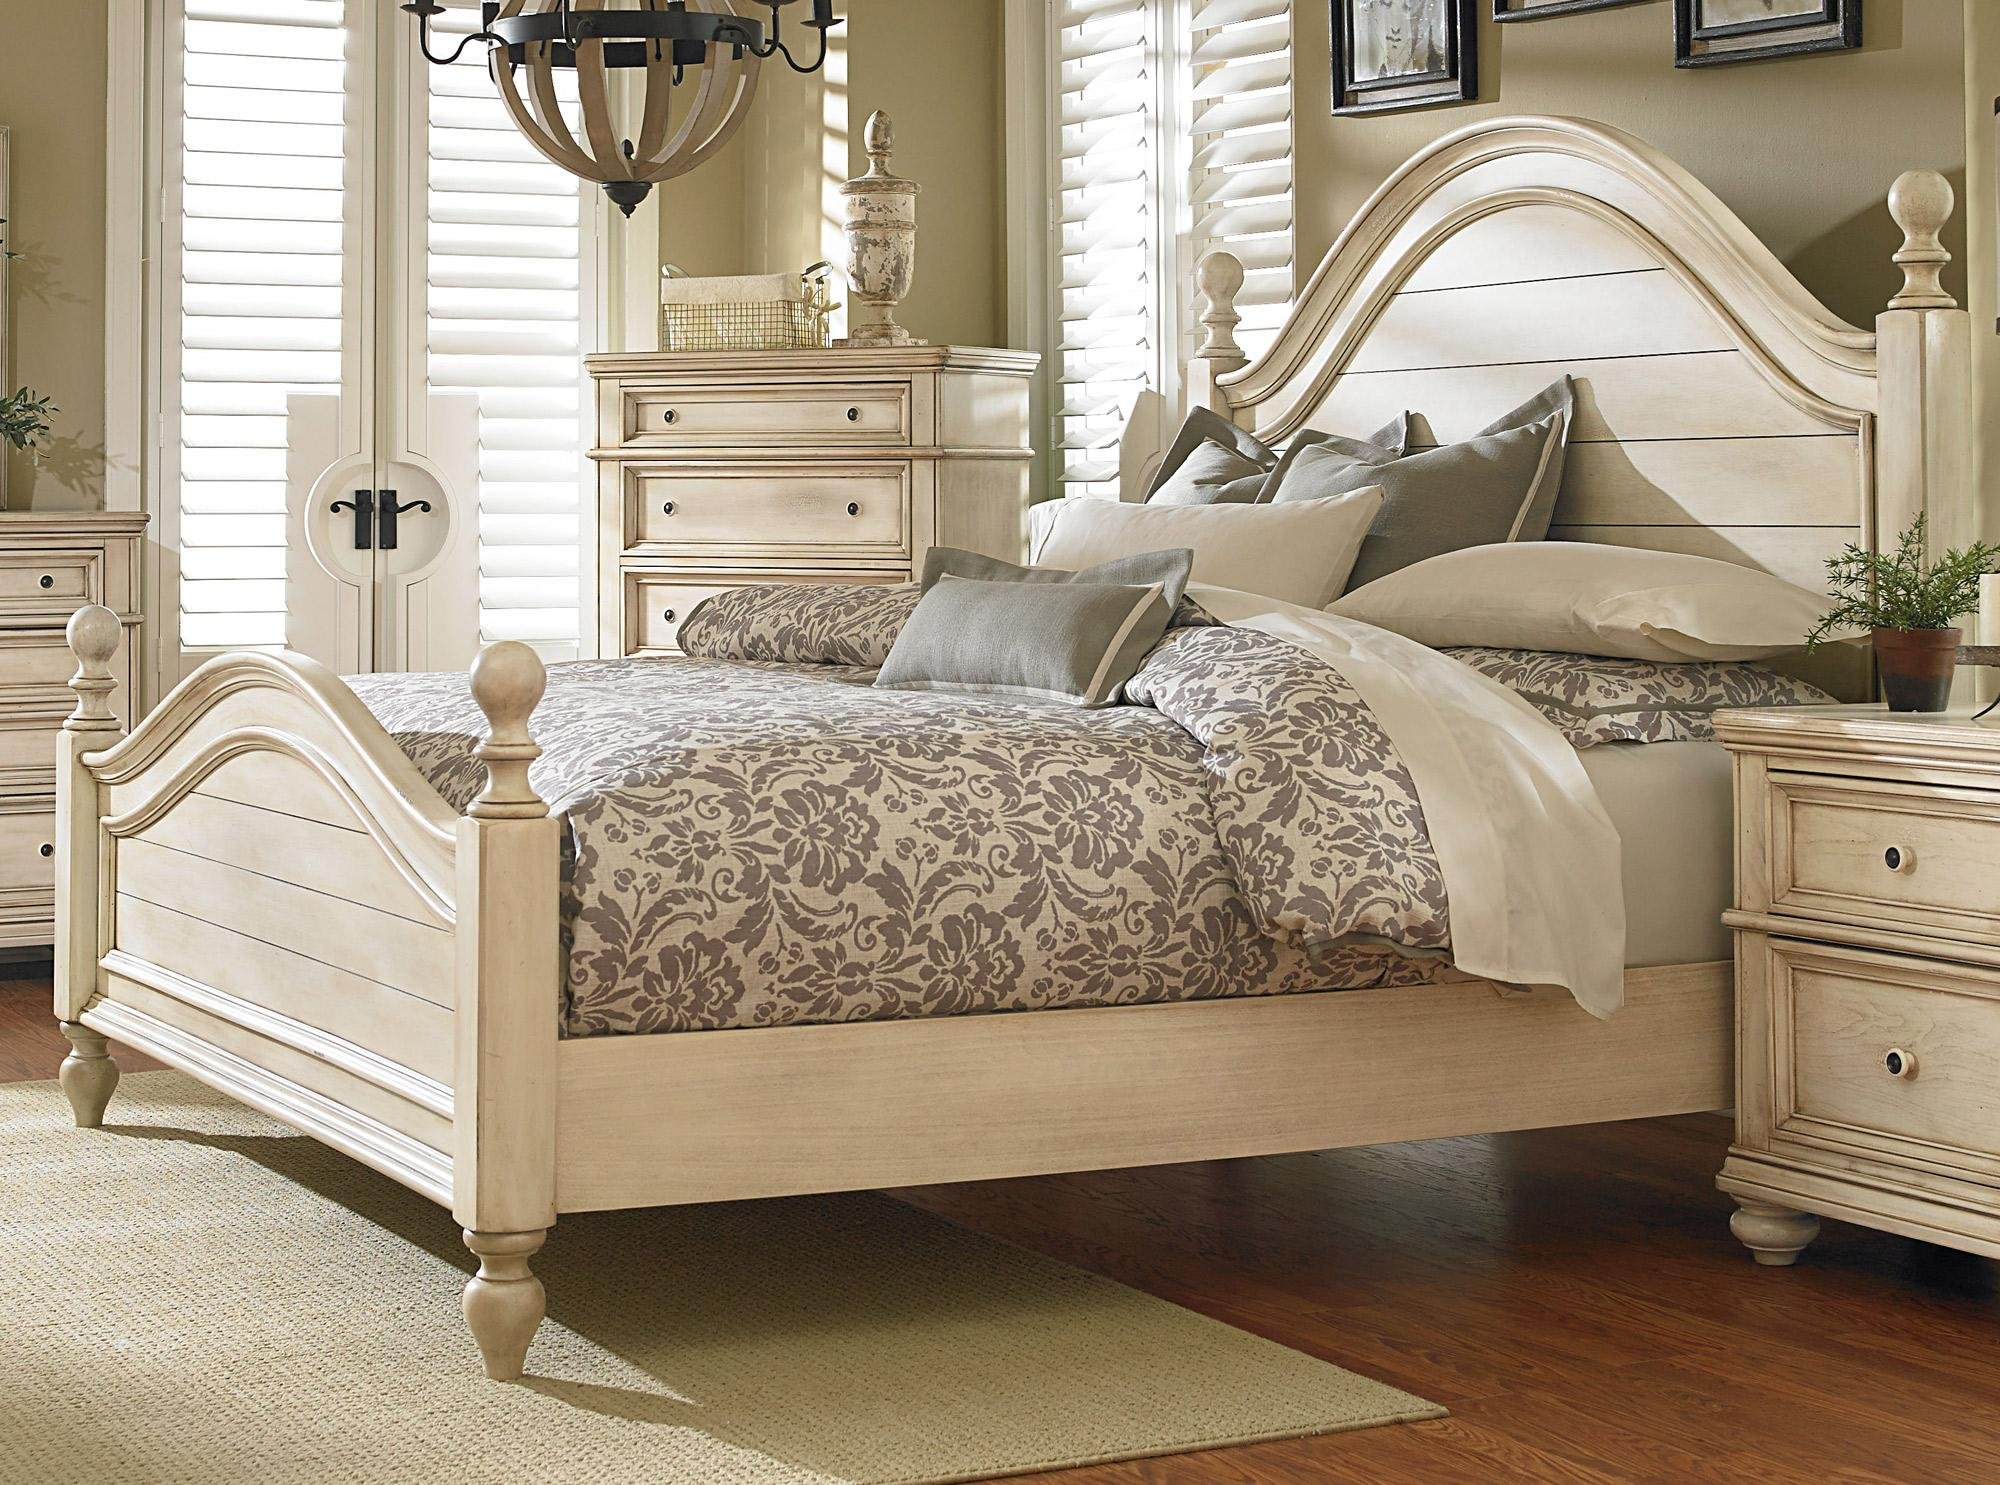 antique white bedroom furniture.  Bedroom Rustic Antique White Queen Bed  Heritage Throughout Bedroom Furniture